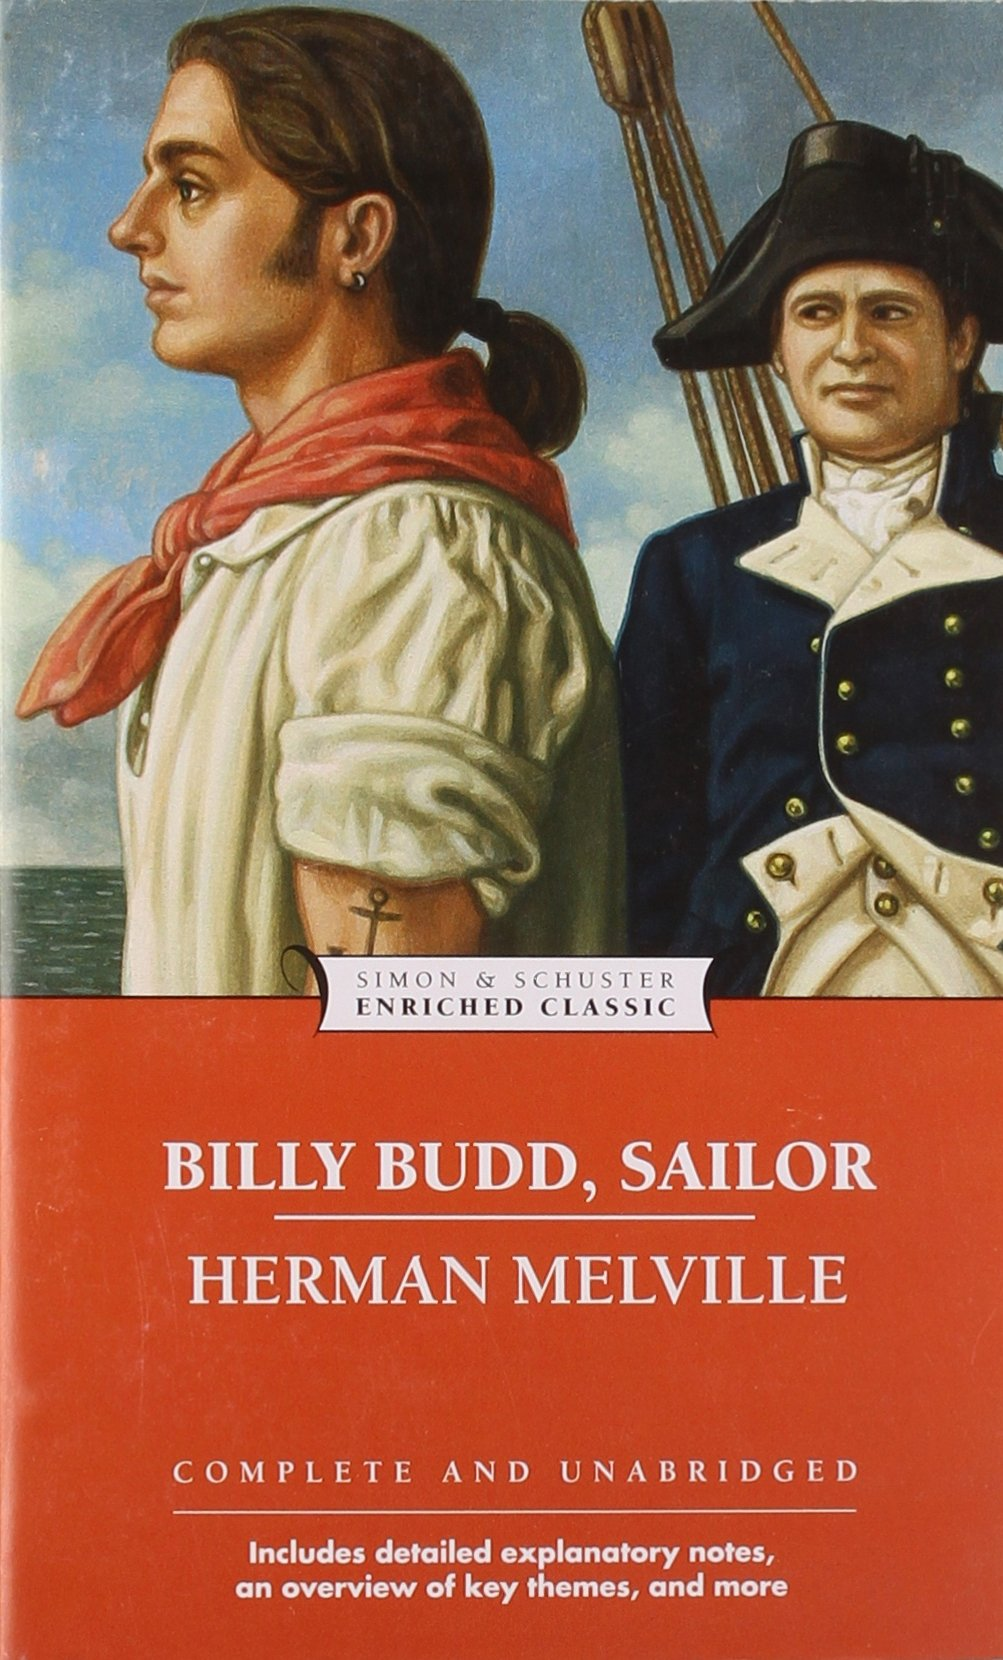 Billy Budd, Sailor (Enriched Classics): Melville, Herman: 9781416523727: Amazon.com: Books